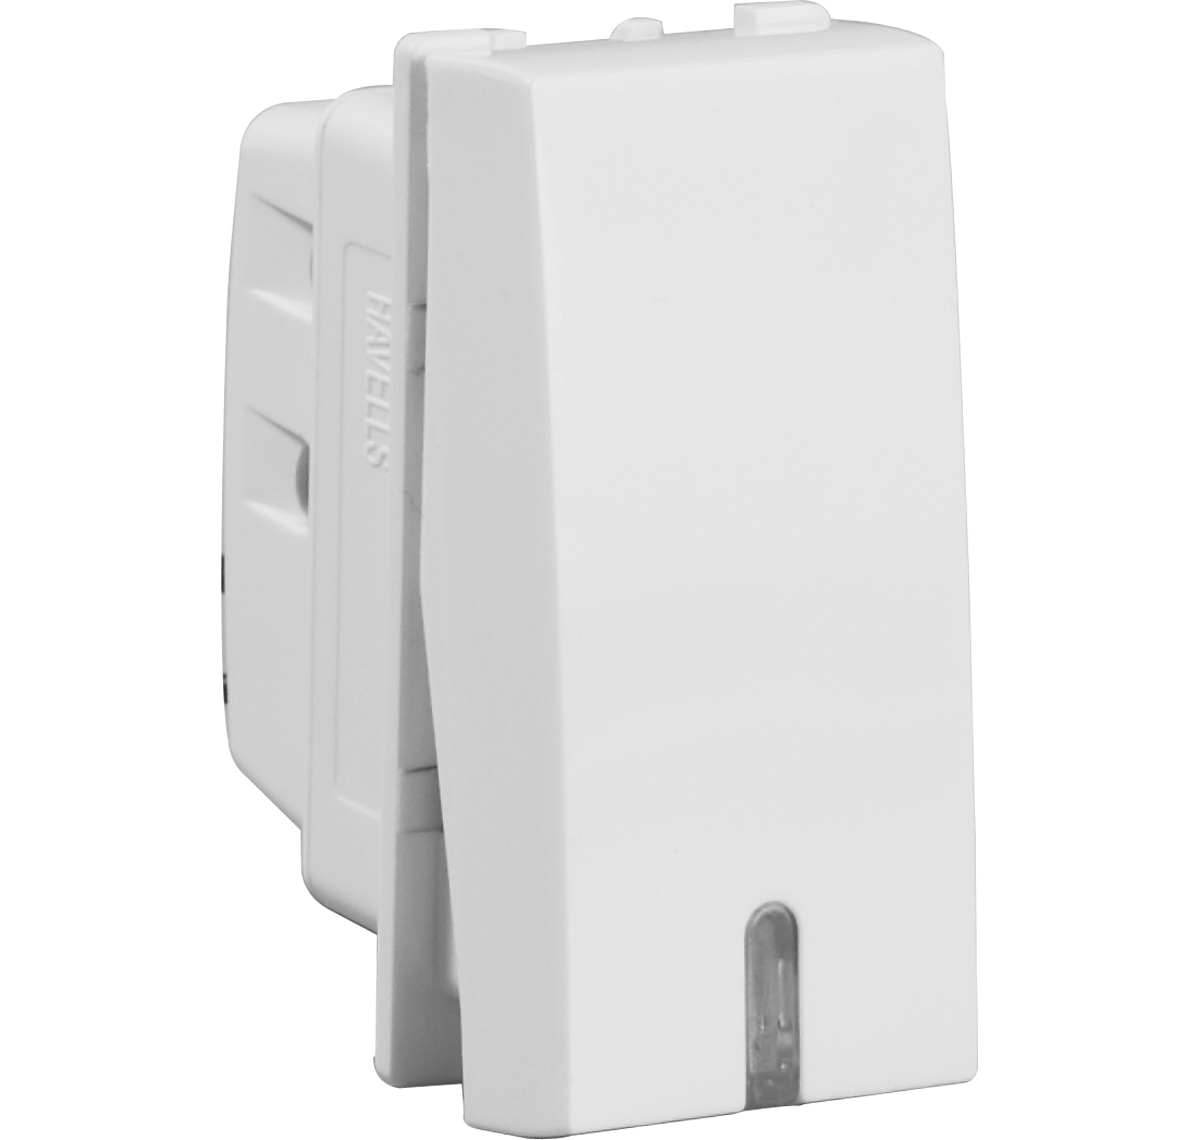 16 AX 1 way switch with ind.